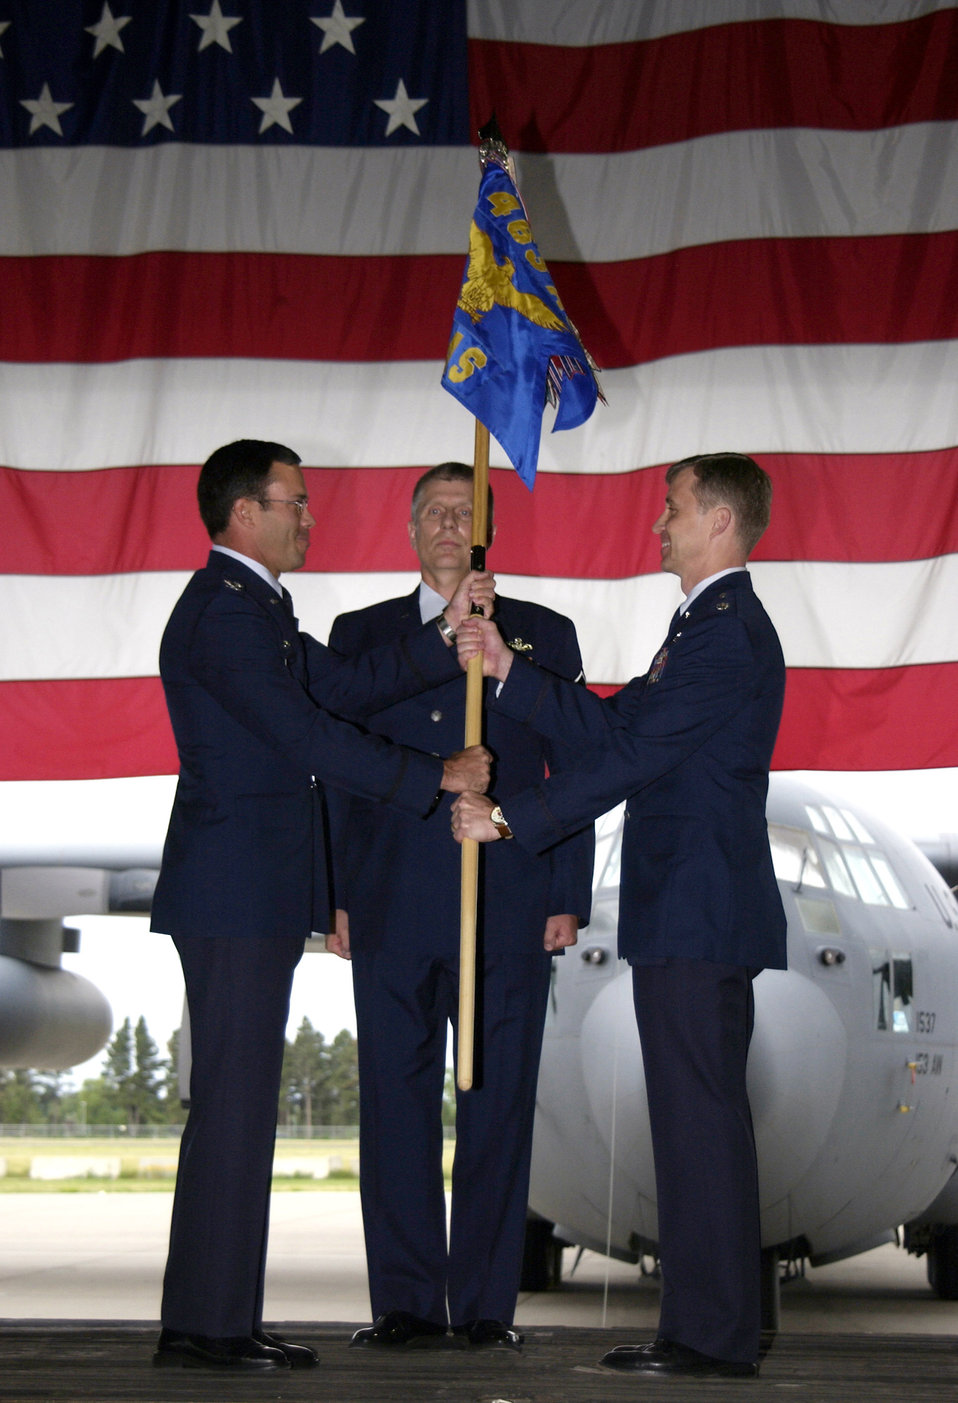 Active duty associate squadron a first for Air Force